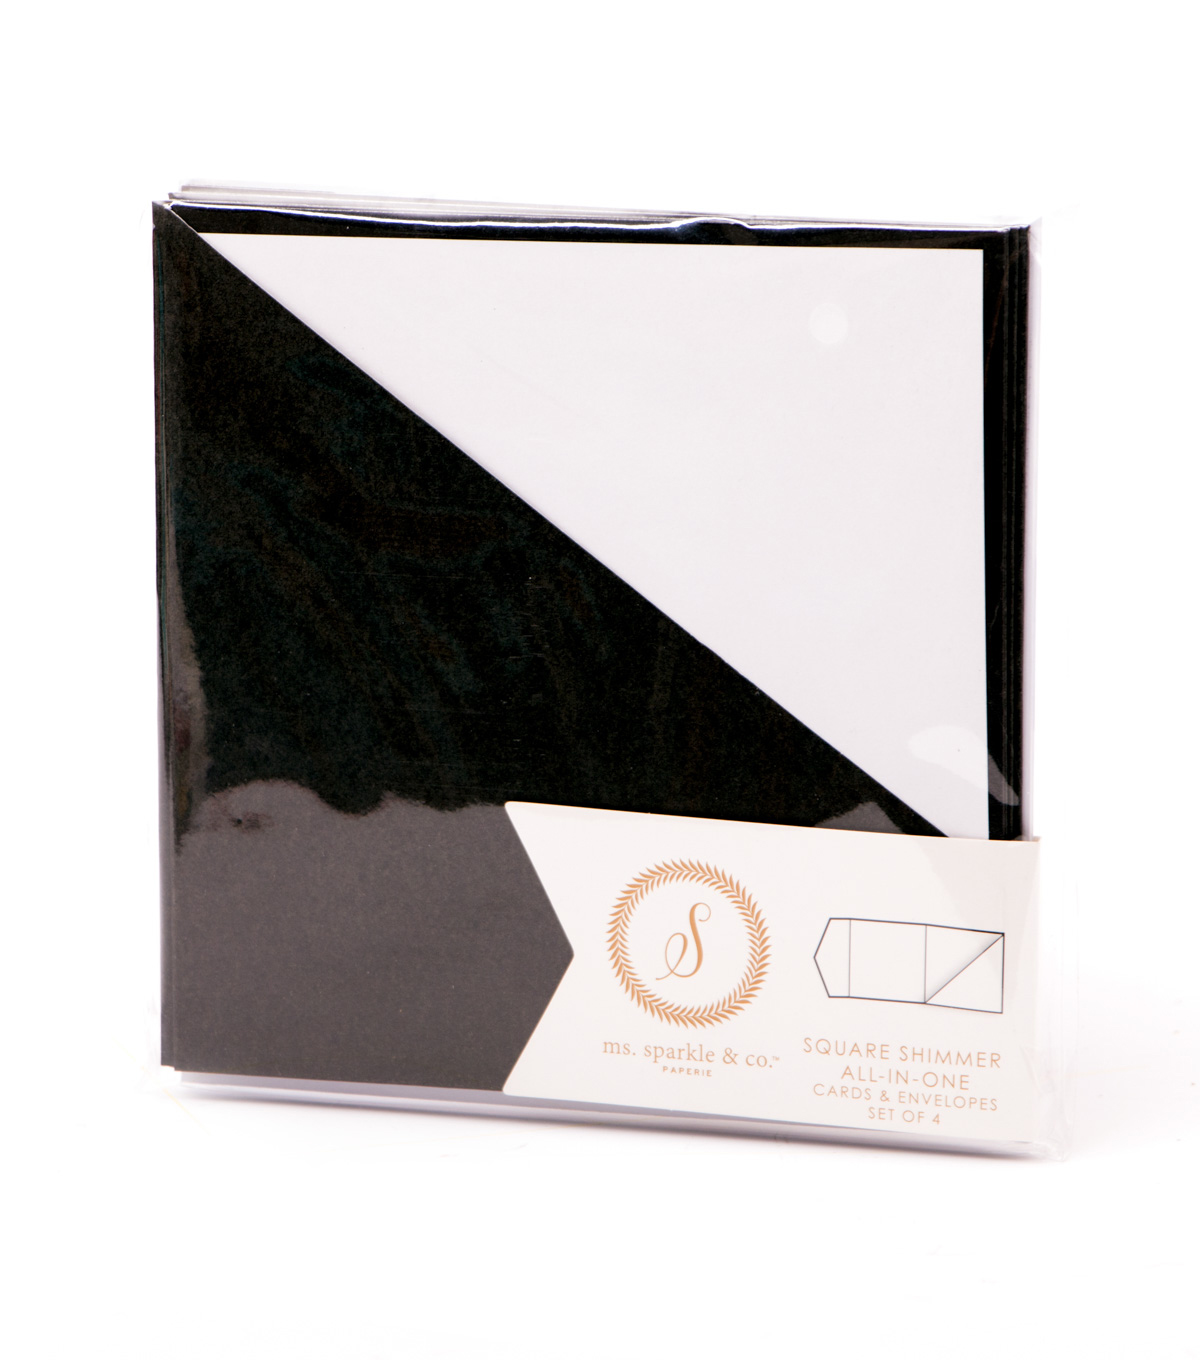 Ms. Sparkle & Co. All In One Shimmer Square Cards & Envelopes-Black